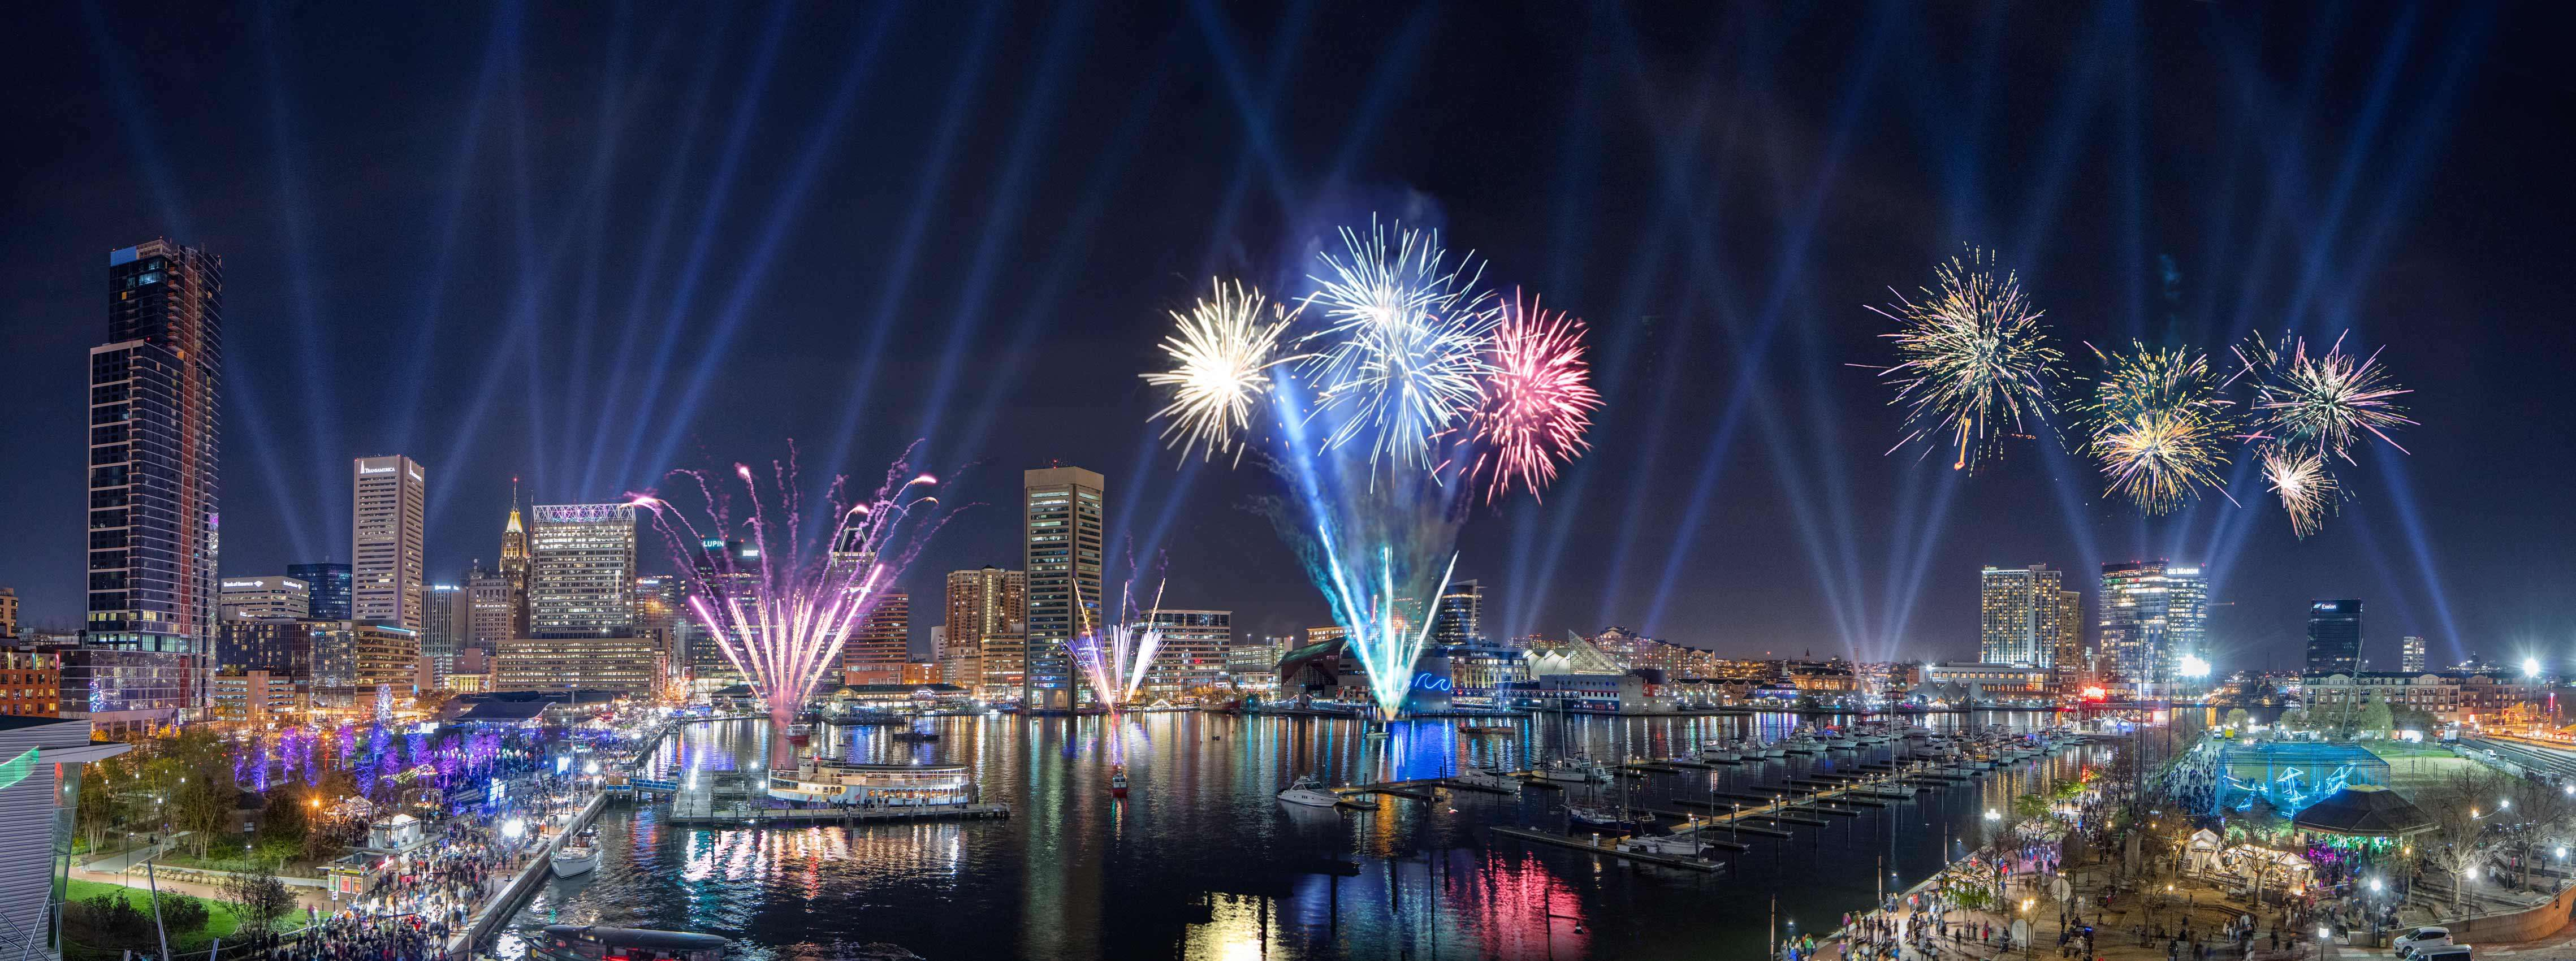 Light City Baltimore with Lights and Fireworks